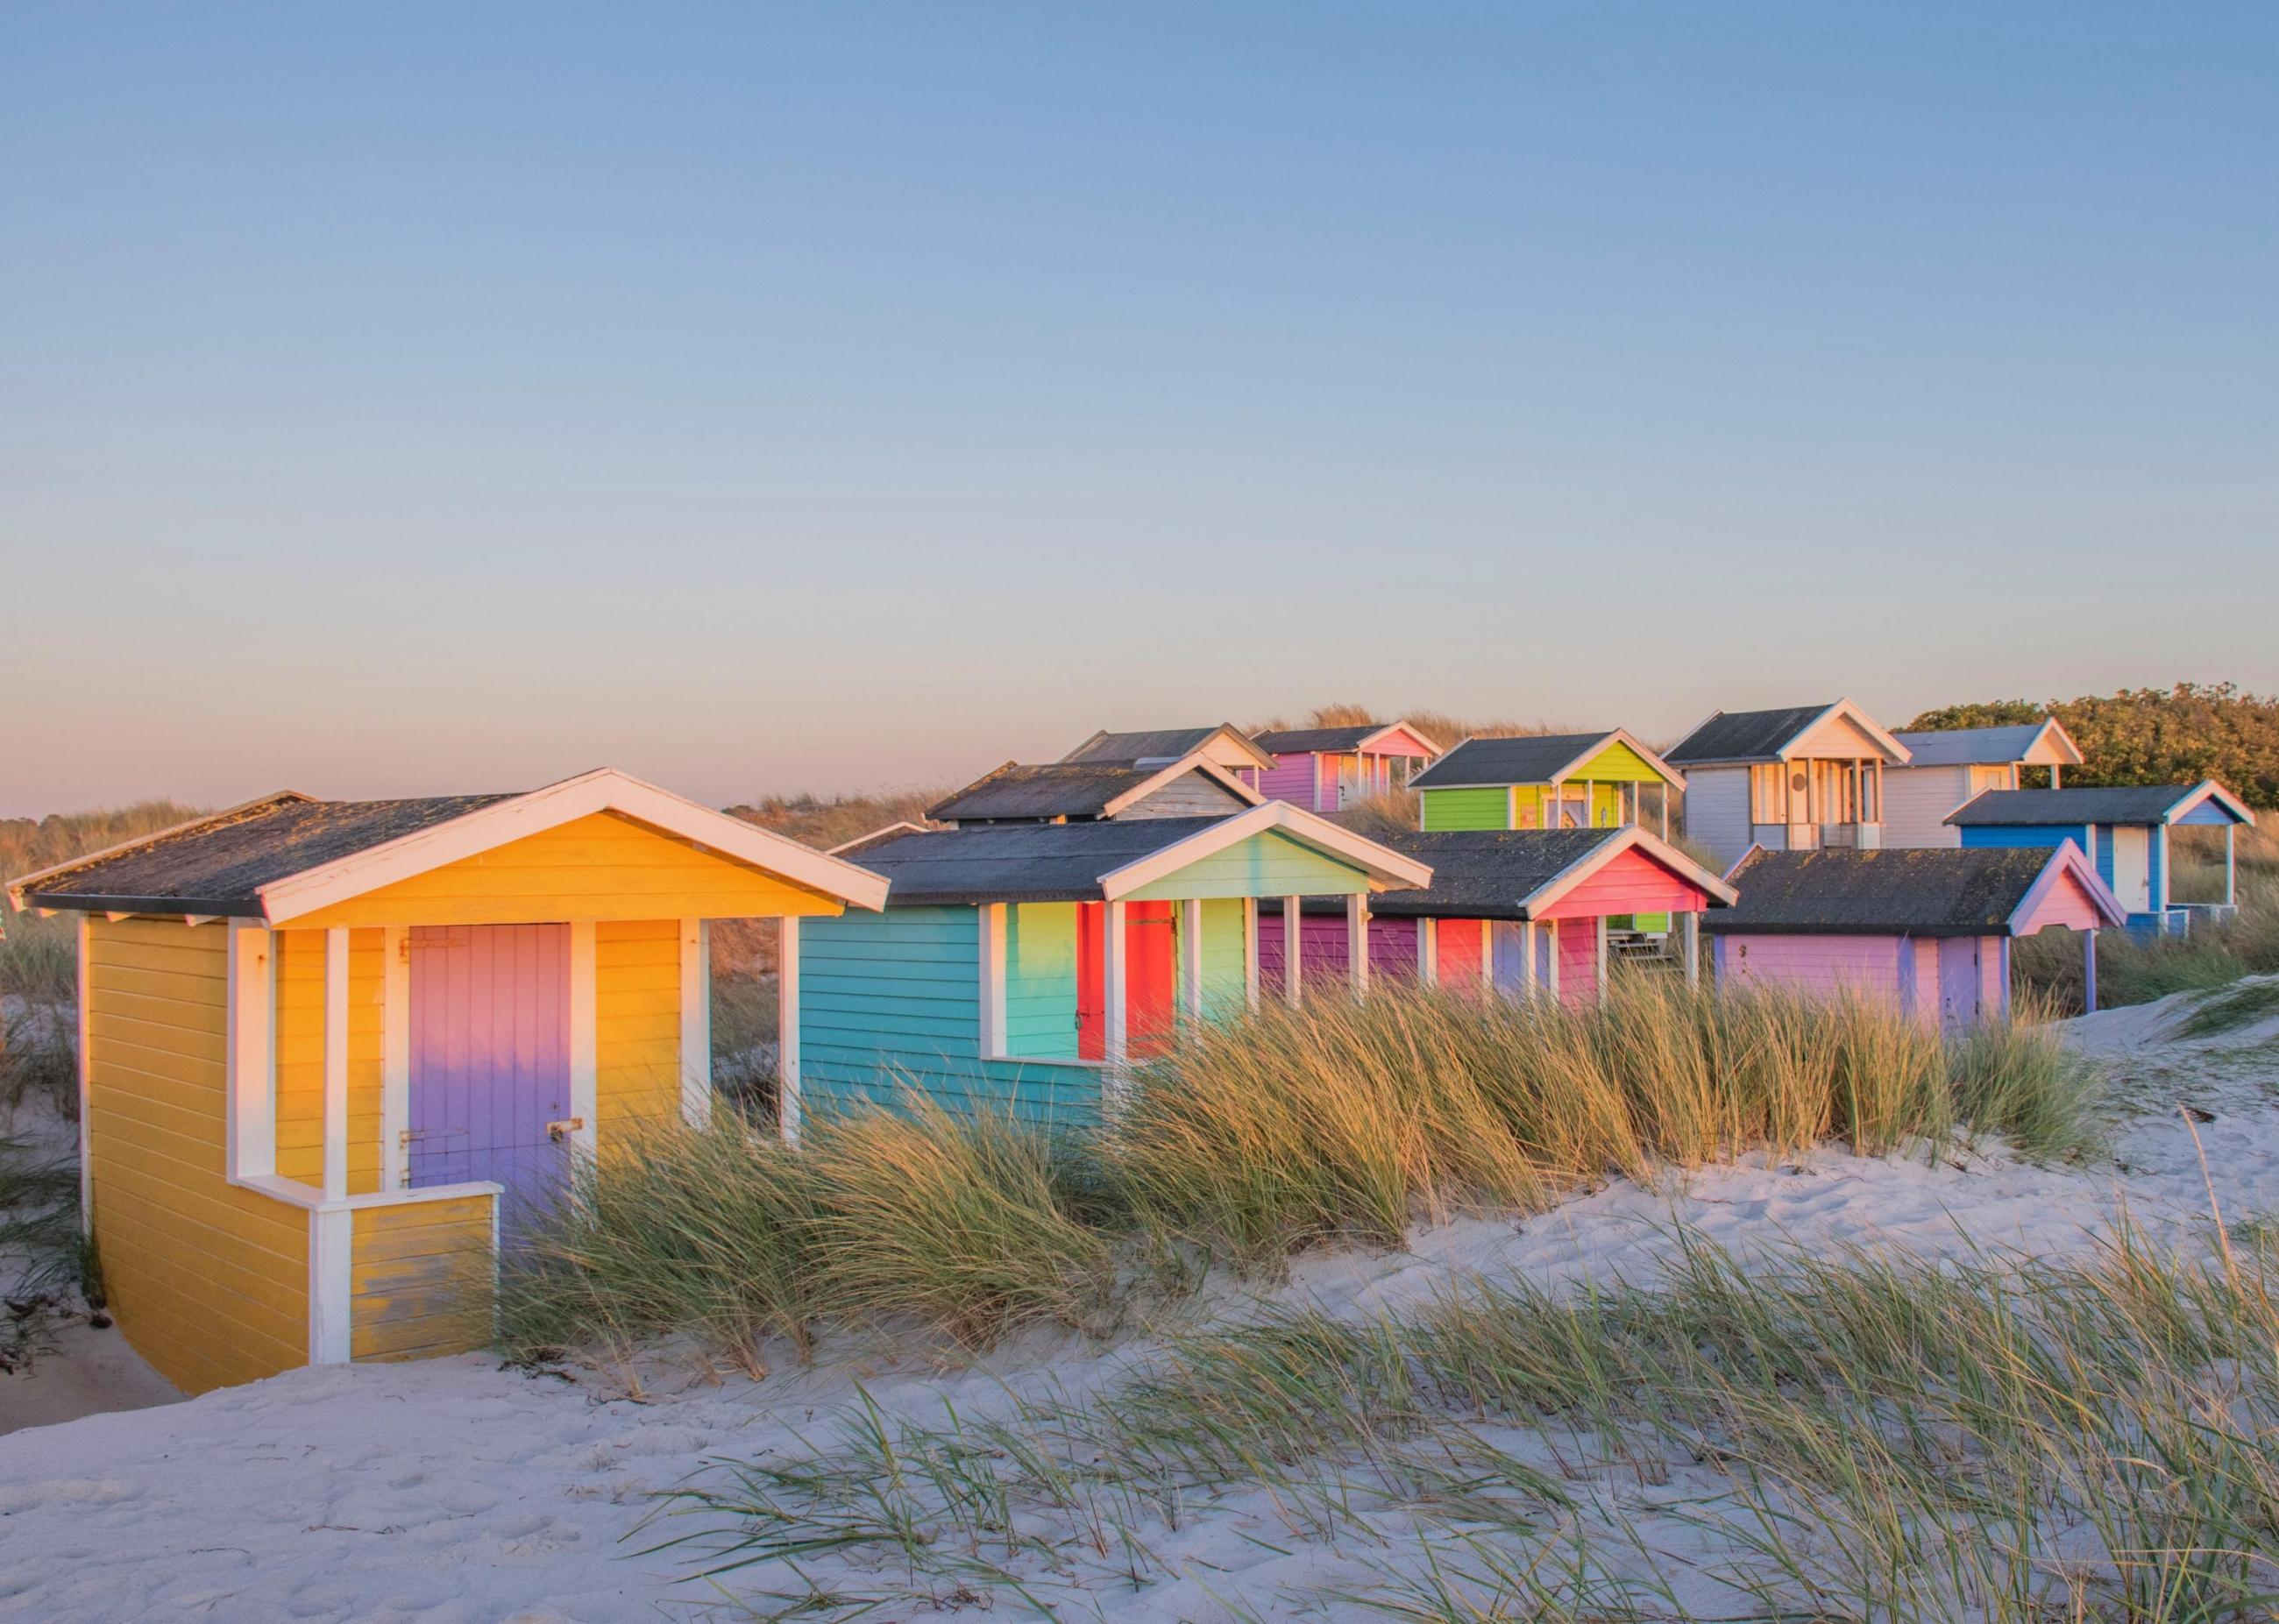 Colorful bathing huts on a white beach under a clear bluse sky.